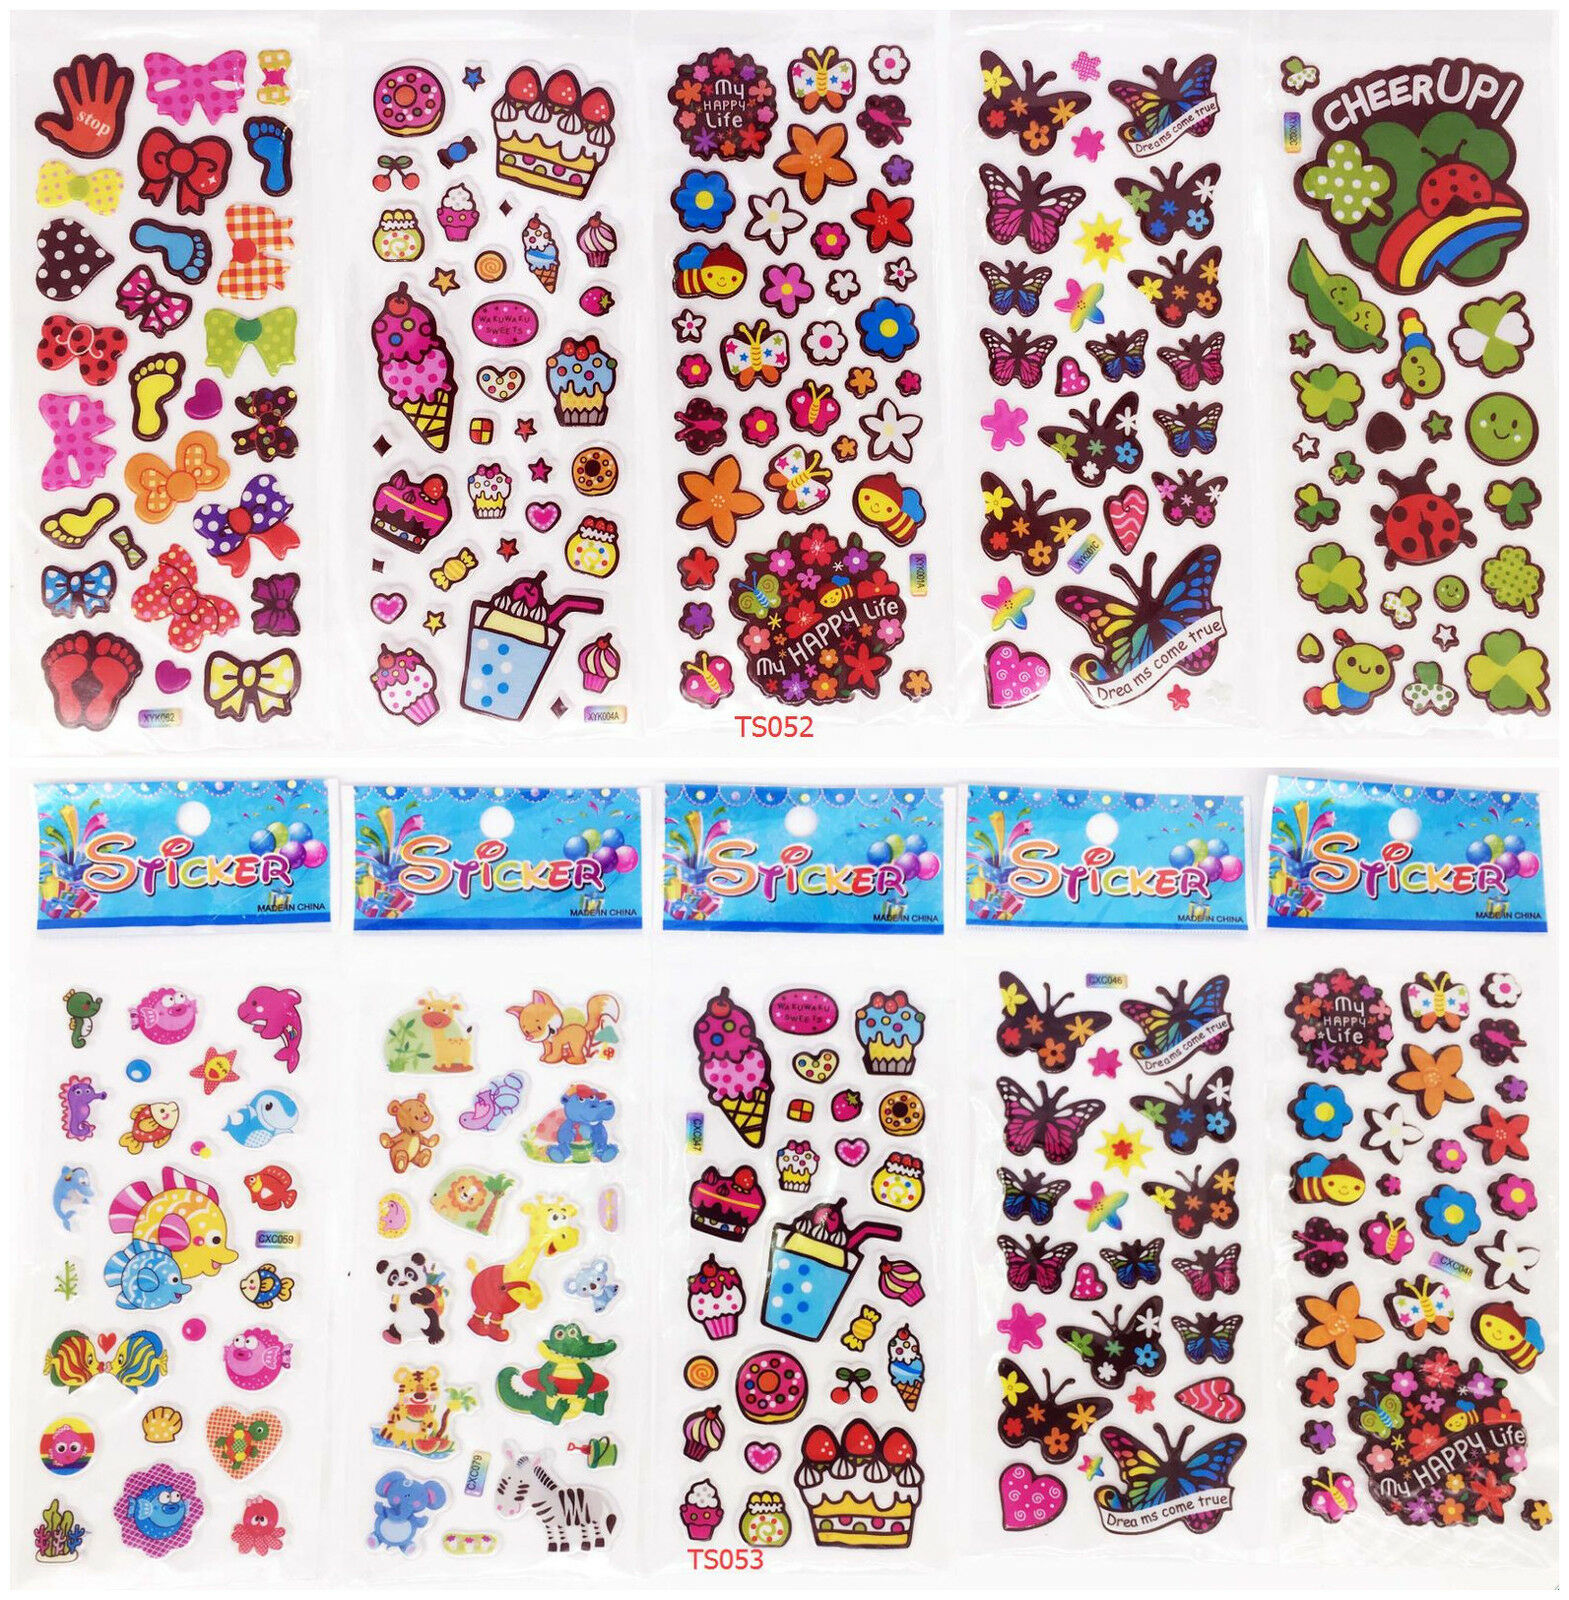 10 Sheets 3D Child Wall Scrapbooking & Paper Kids Crafts Stickers Lot Party Gift Toys Kindergarten Reward Gift